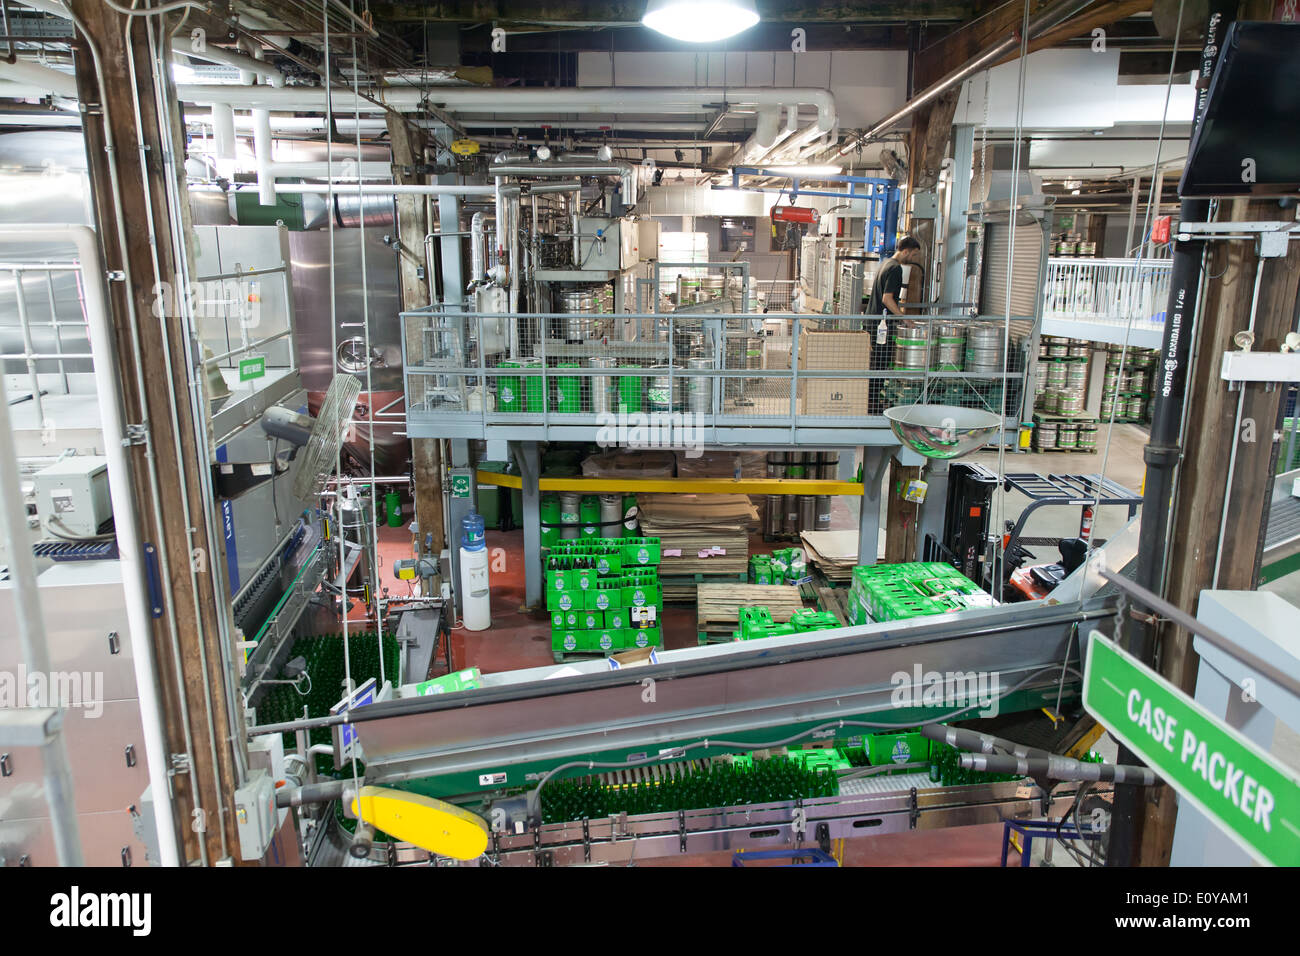 inside steam whistle brewery beer production line Stock Photo